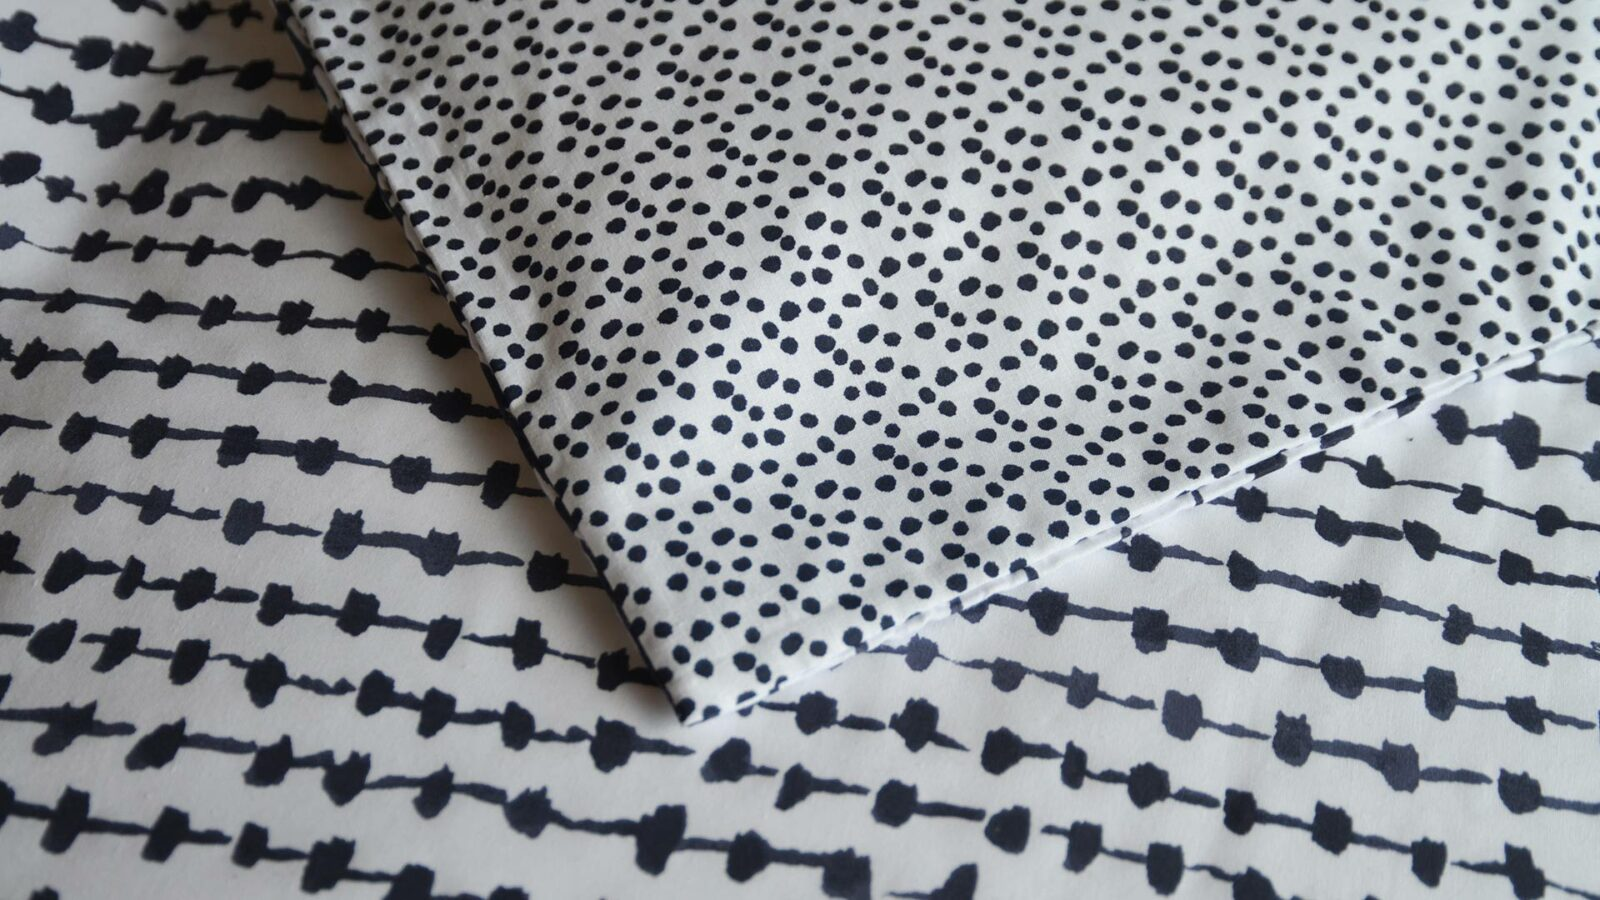 Black and white reversible duvet cover set, a closer view of the 2 pattern prints